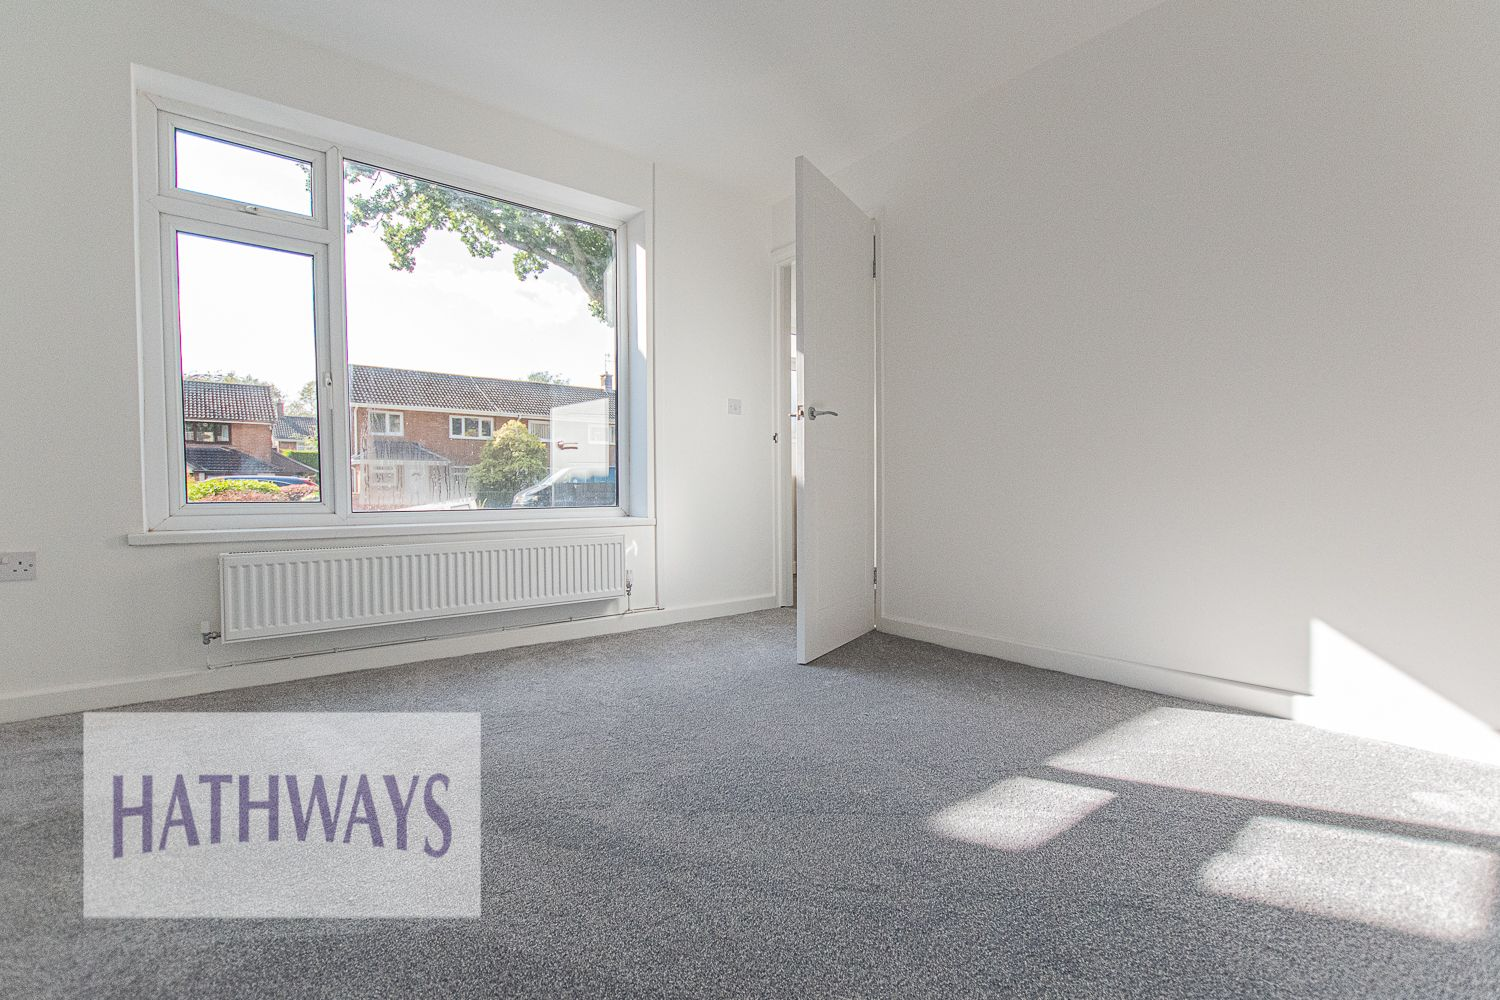 3 bed house for sale in Beaumaris Drive  - Property Image 5